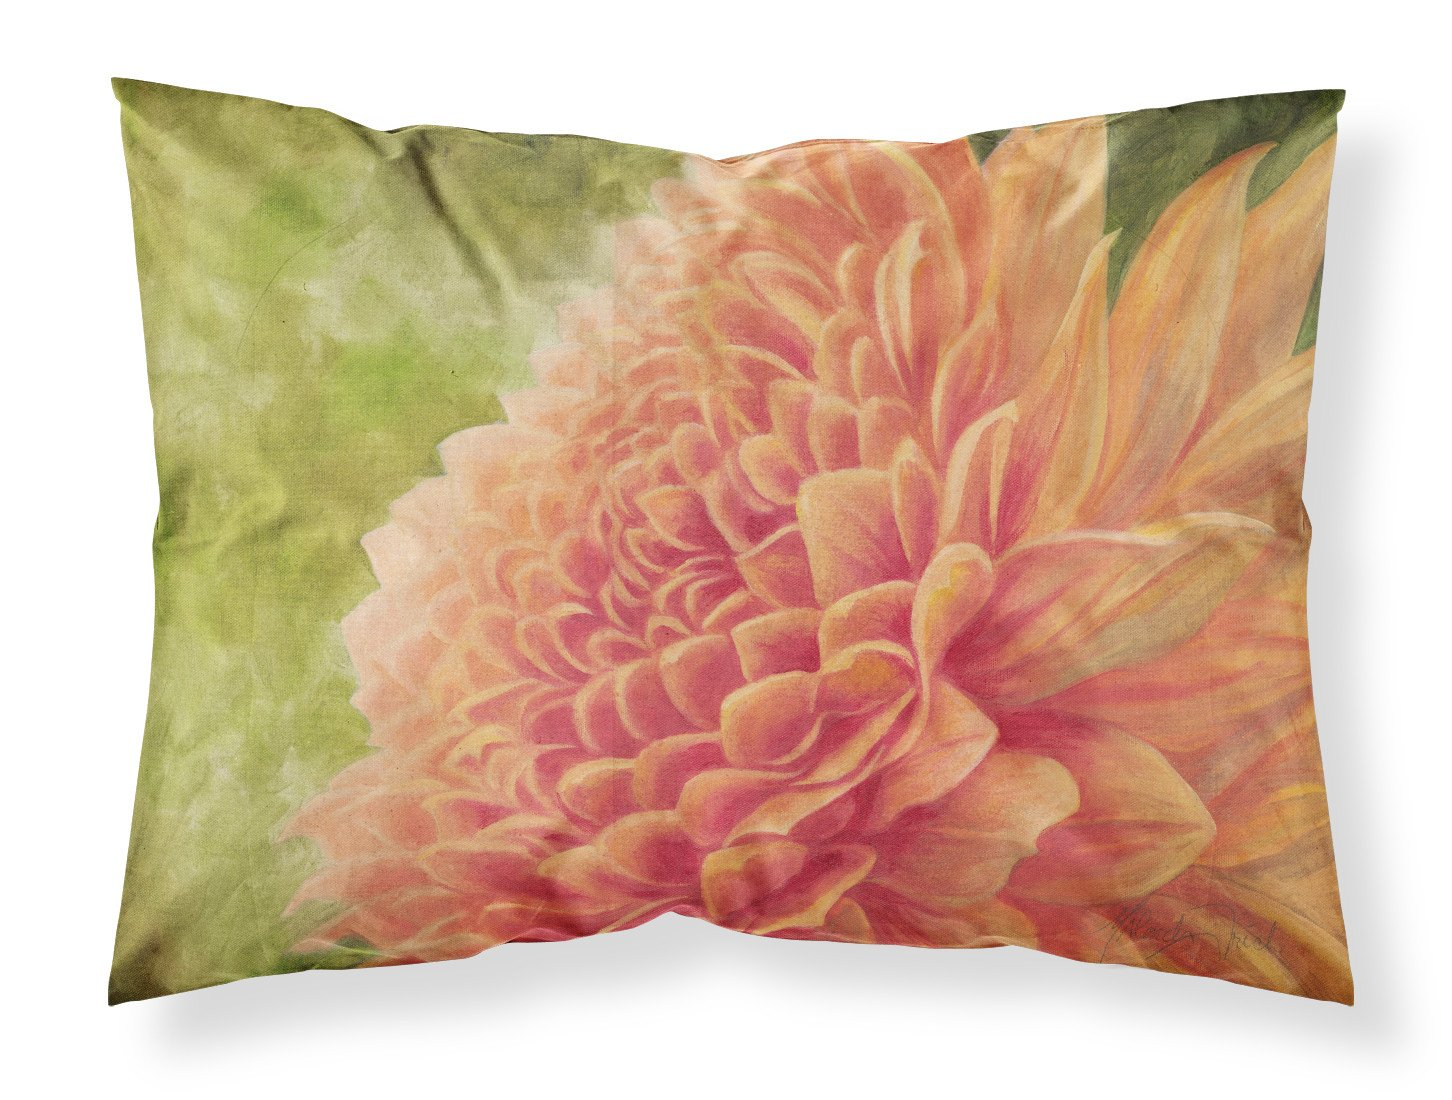 Floral by Malenda Trick Fabric Standard Pillowcase TMTR0232PILLOWCASE by Caroline's Treasures